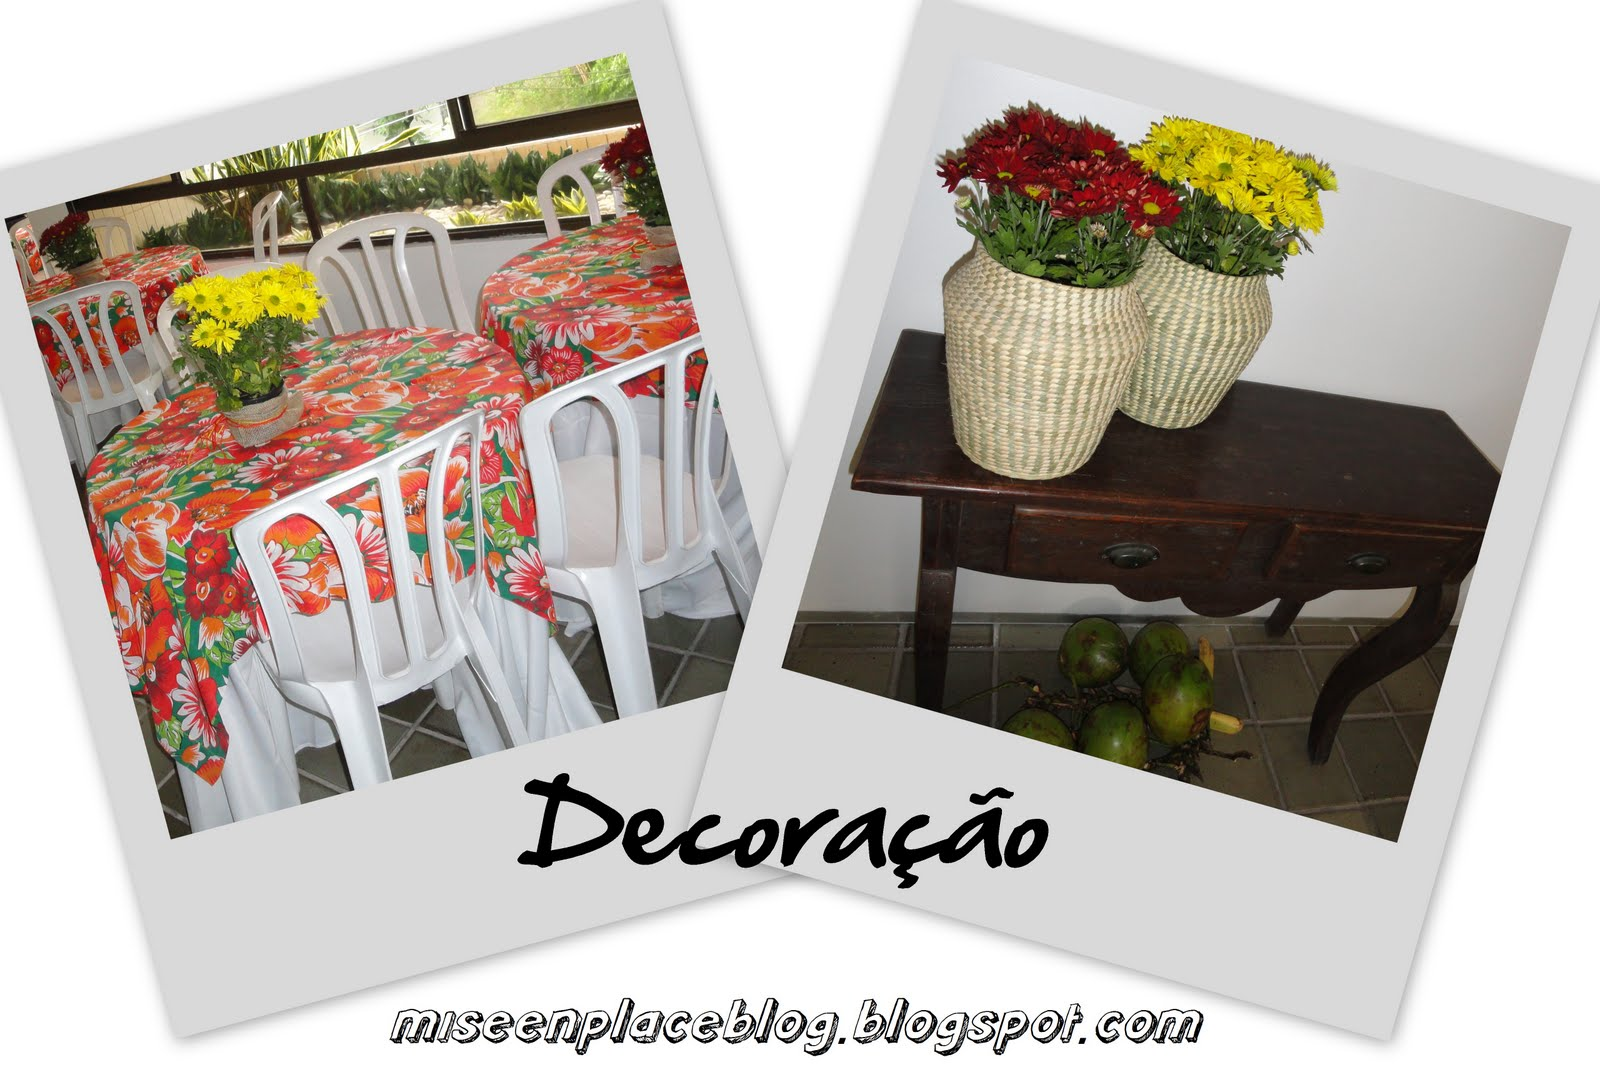 Decora decora agosto 2011 tattoo design bild for Decora home